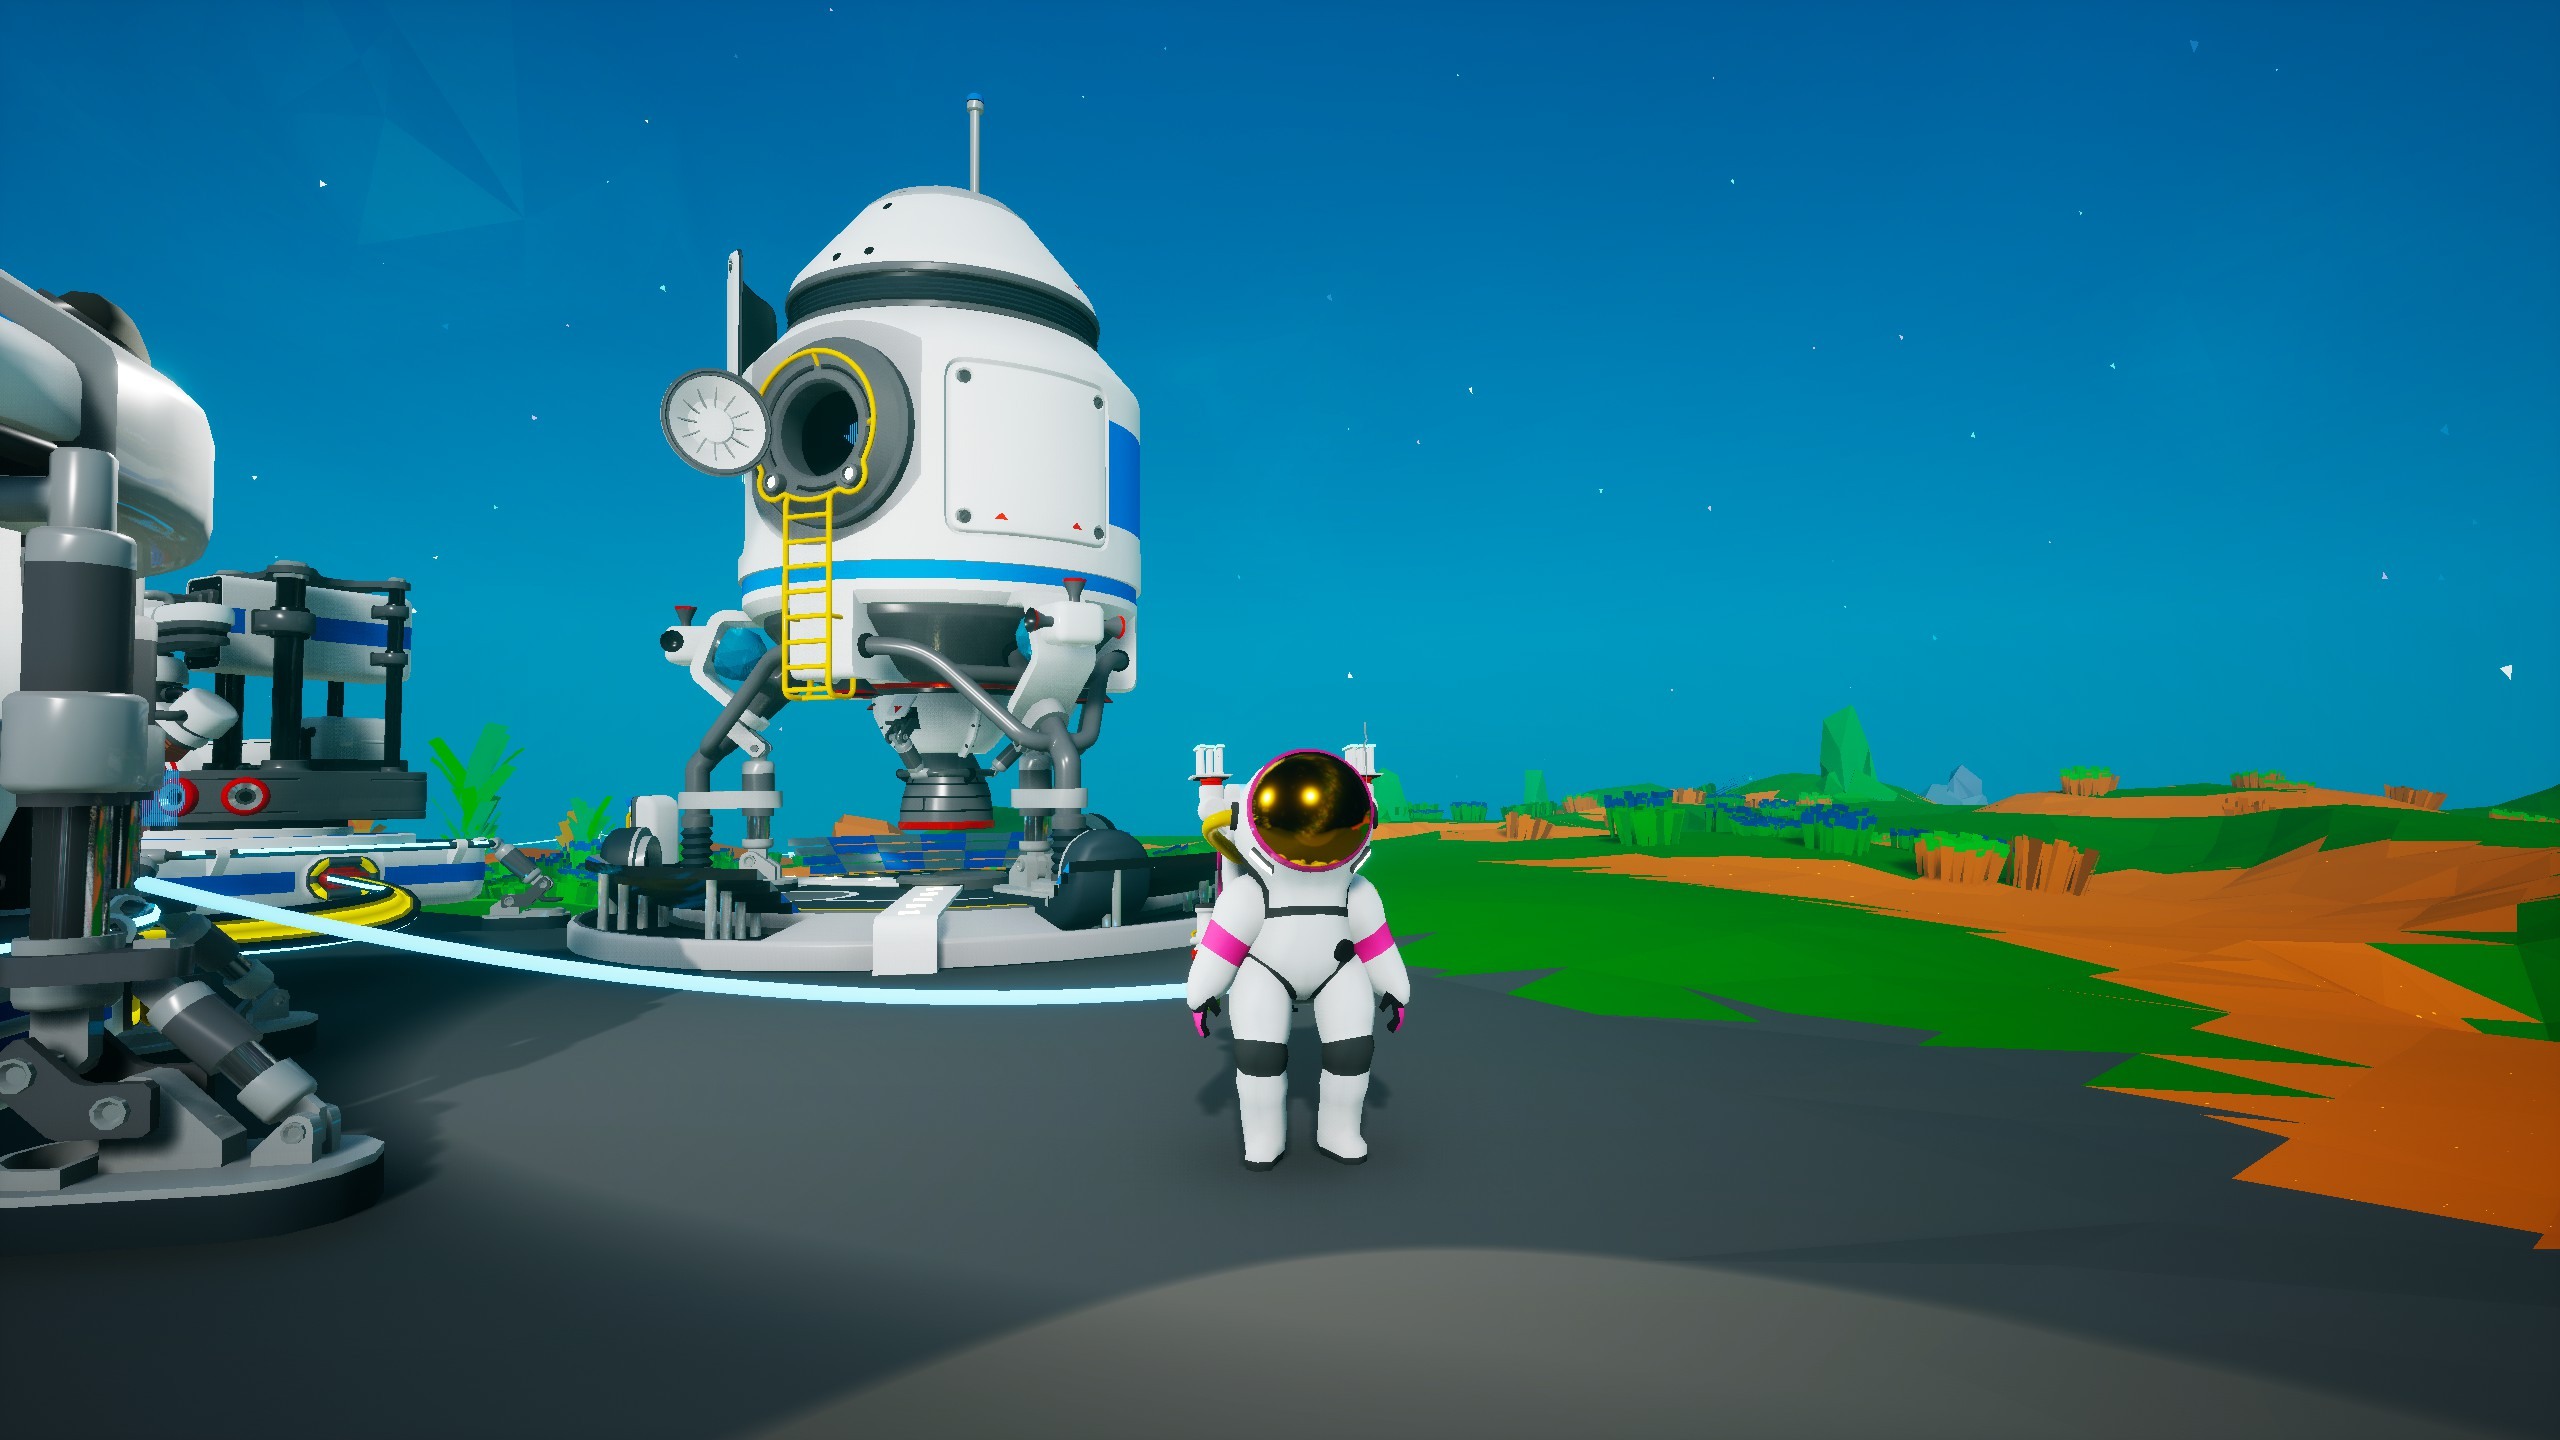 Astroneer Review - Finally Ready to Take Off